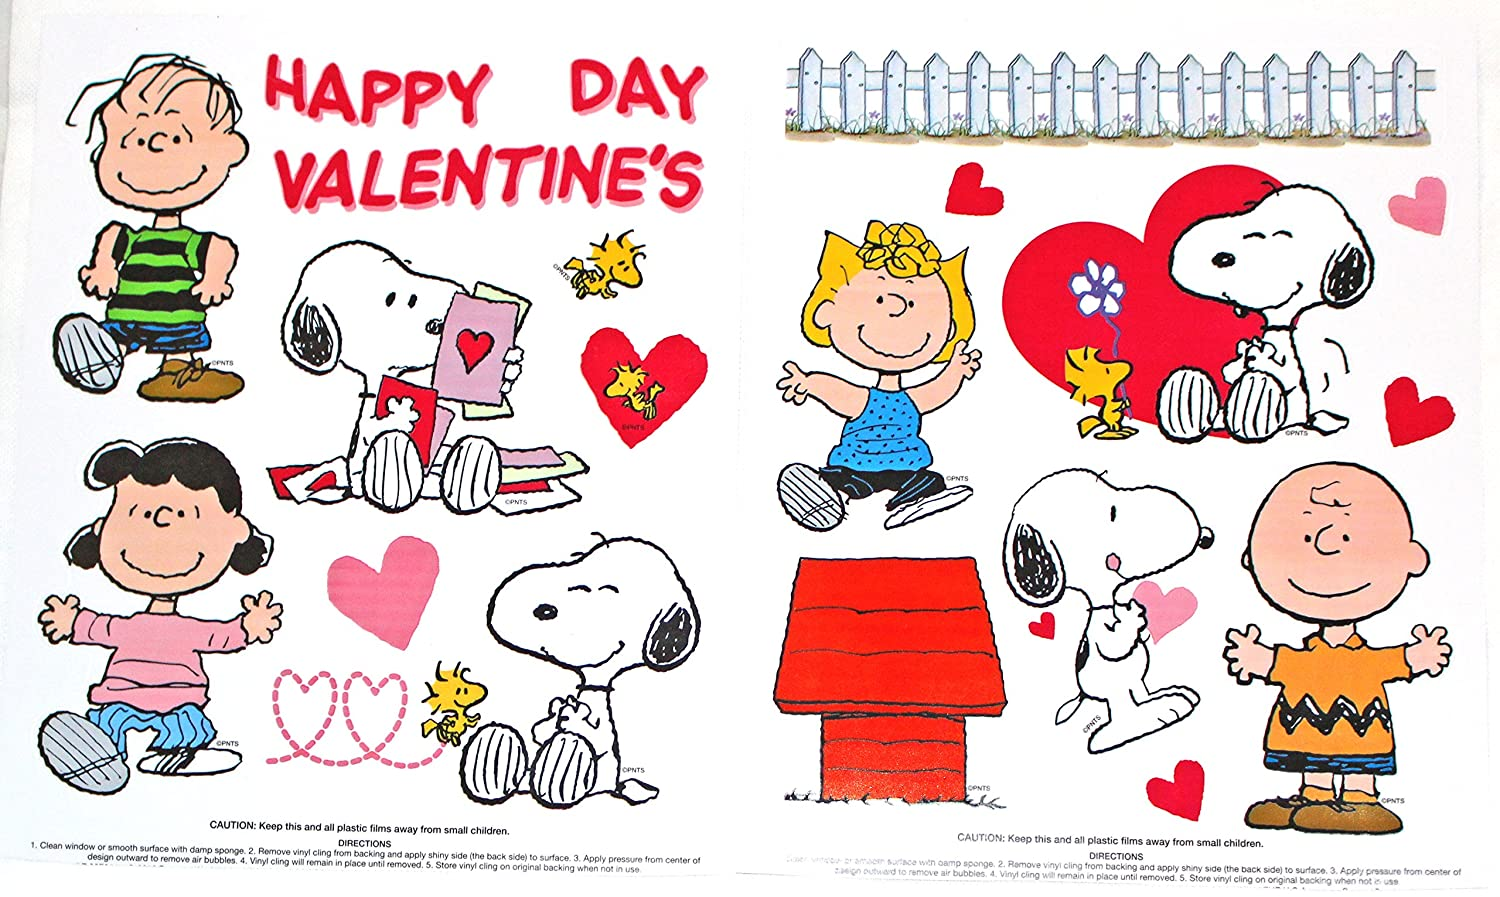 Happy Valentine\'s Day Peanuts Characters Charlie Brown, Lucy, Snoopy Vinyl Window Clings UFS